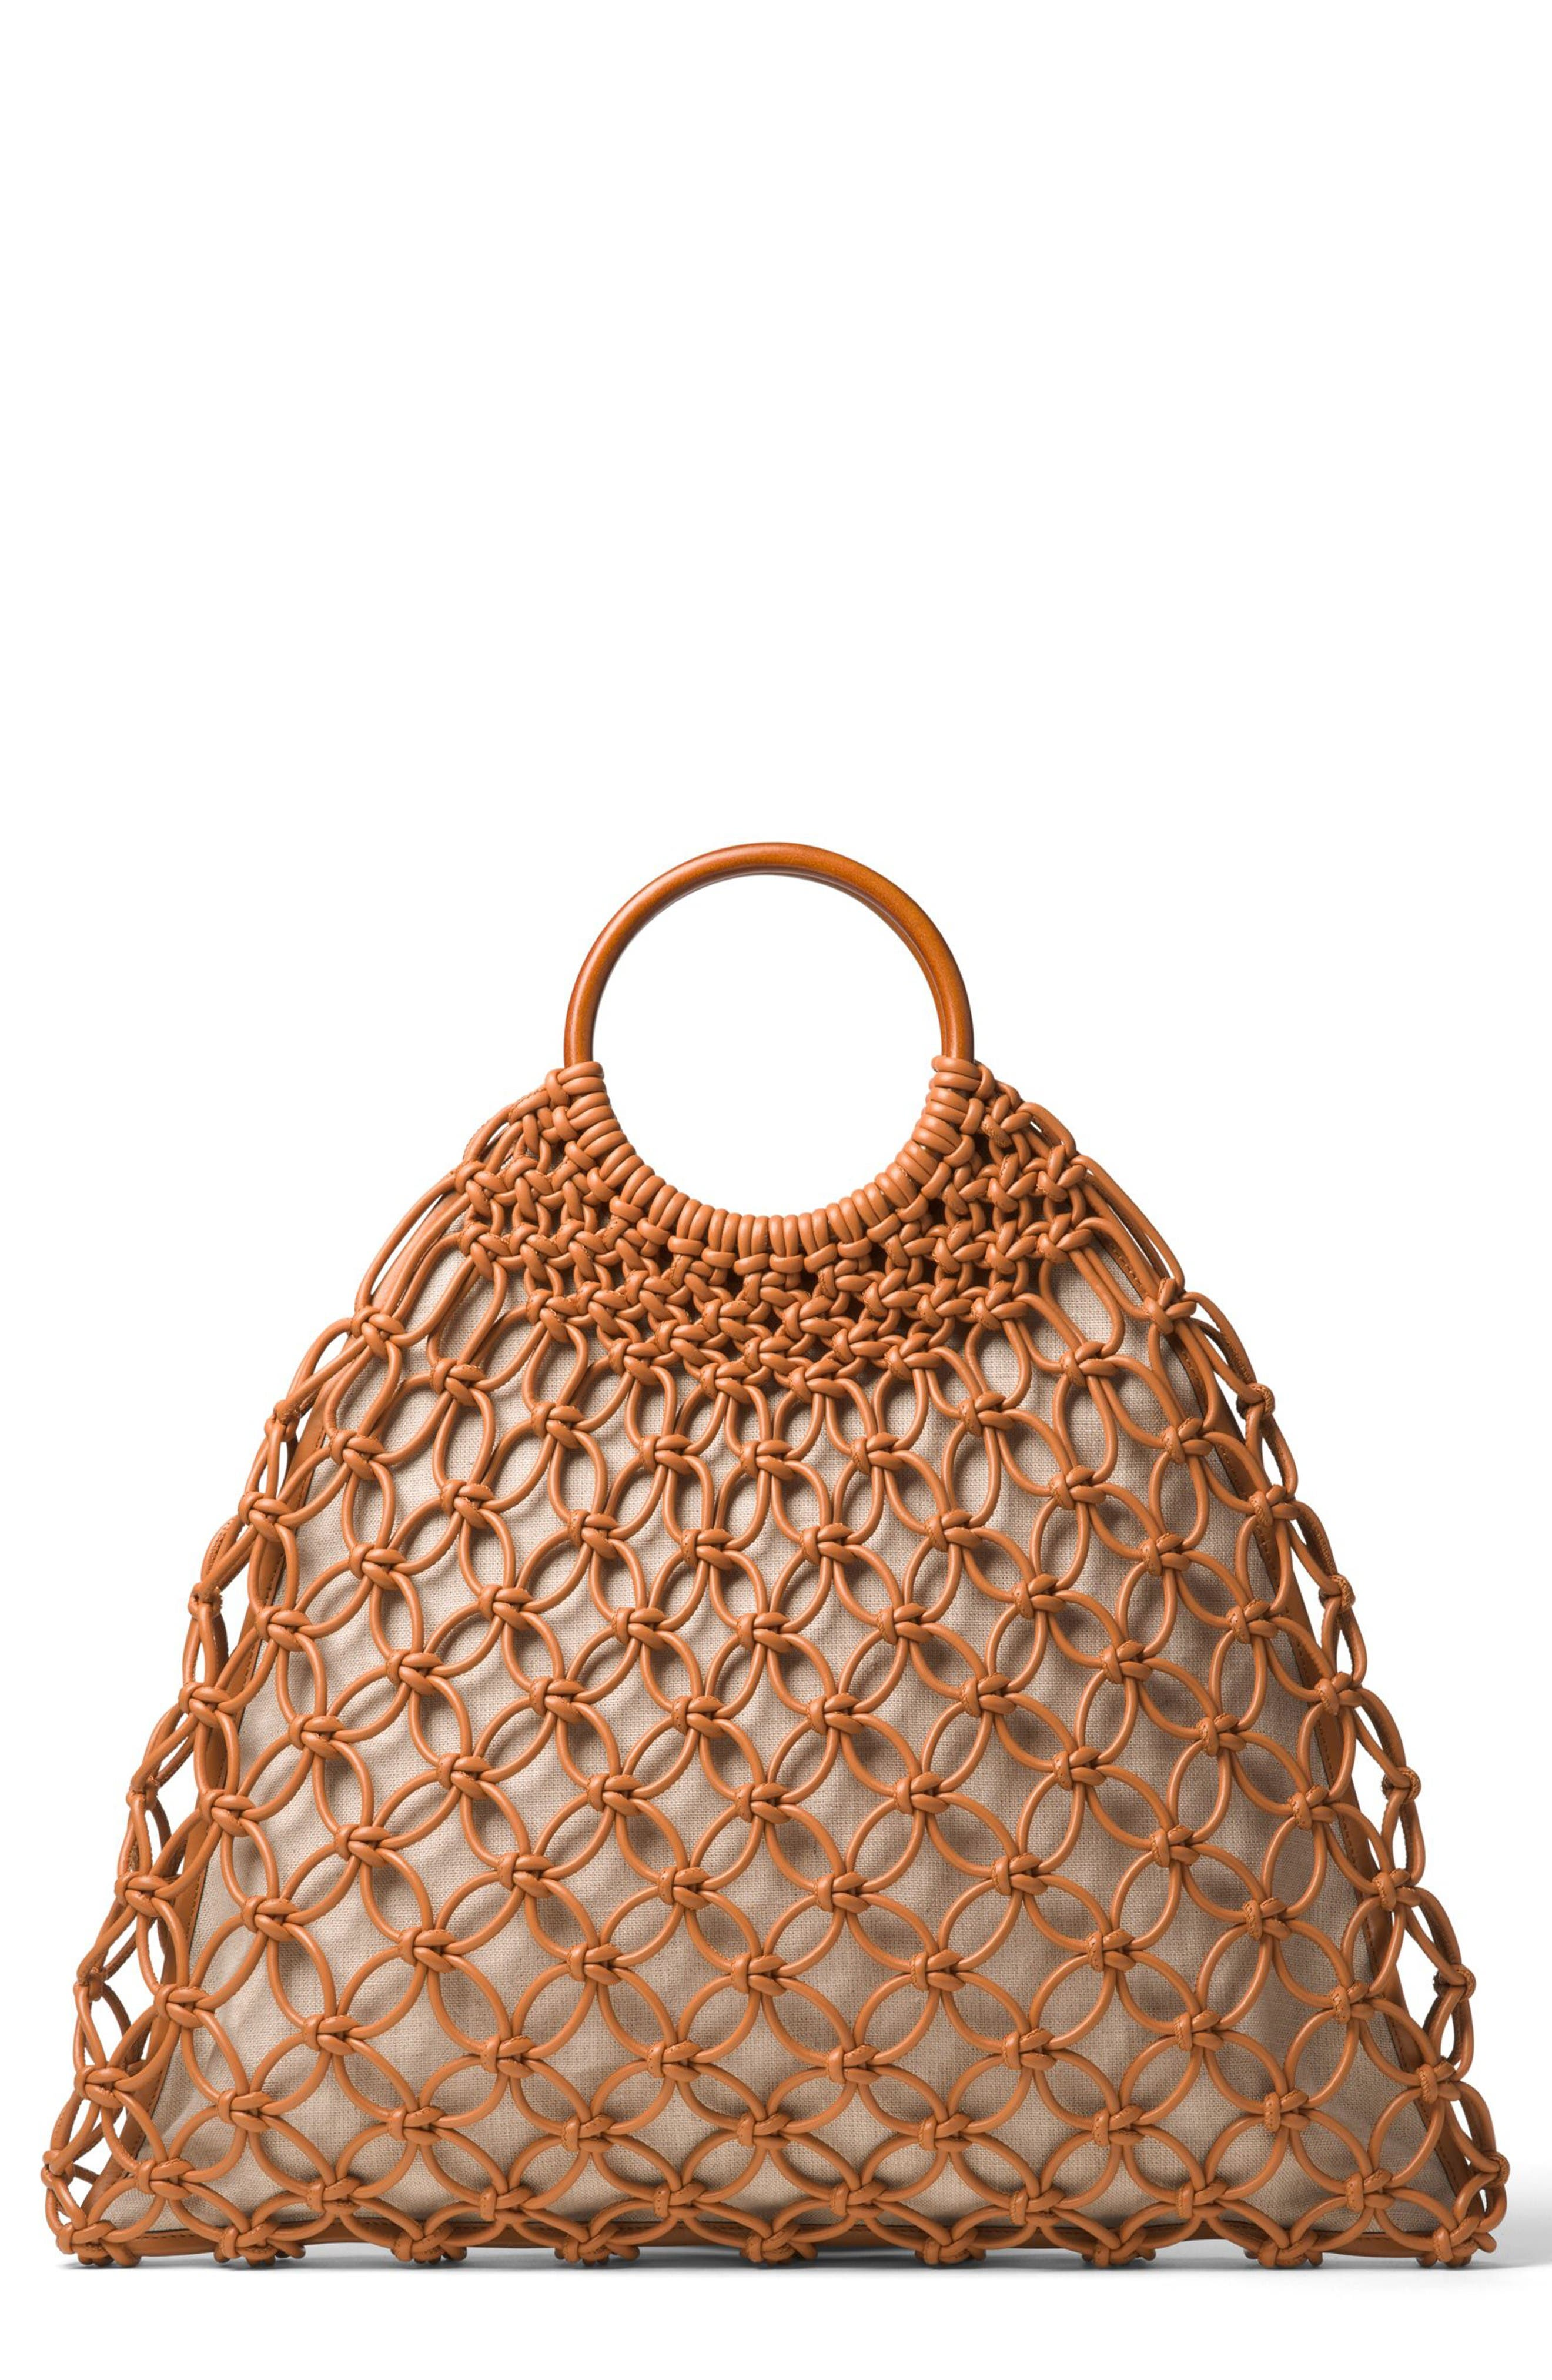 Alternate Image 1 Selected - Michael Kors Cooper Woven Leather Tote